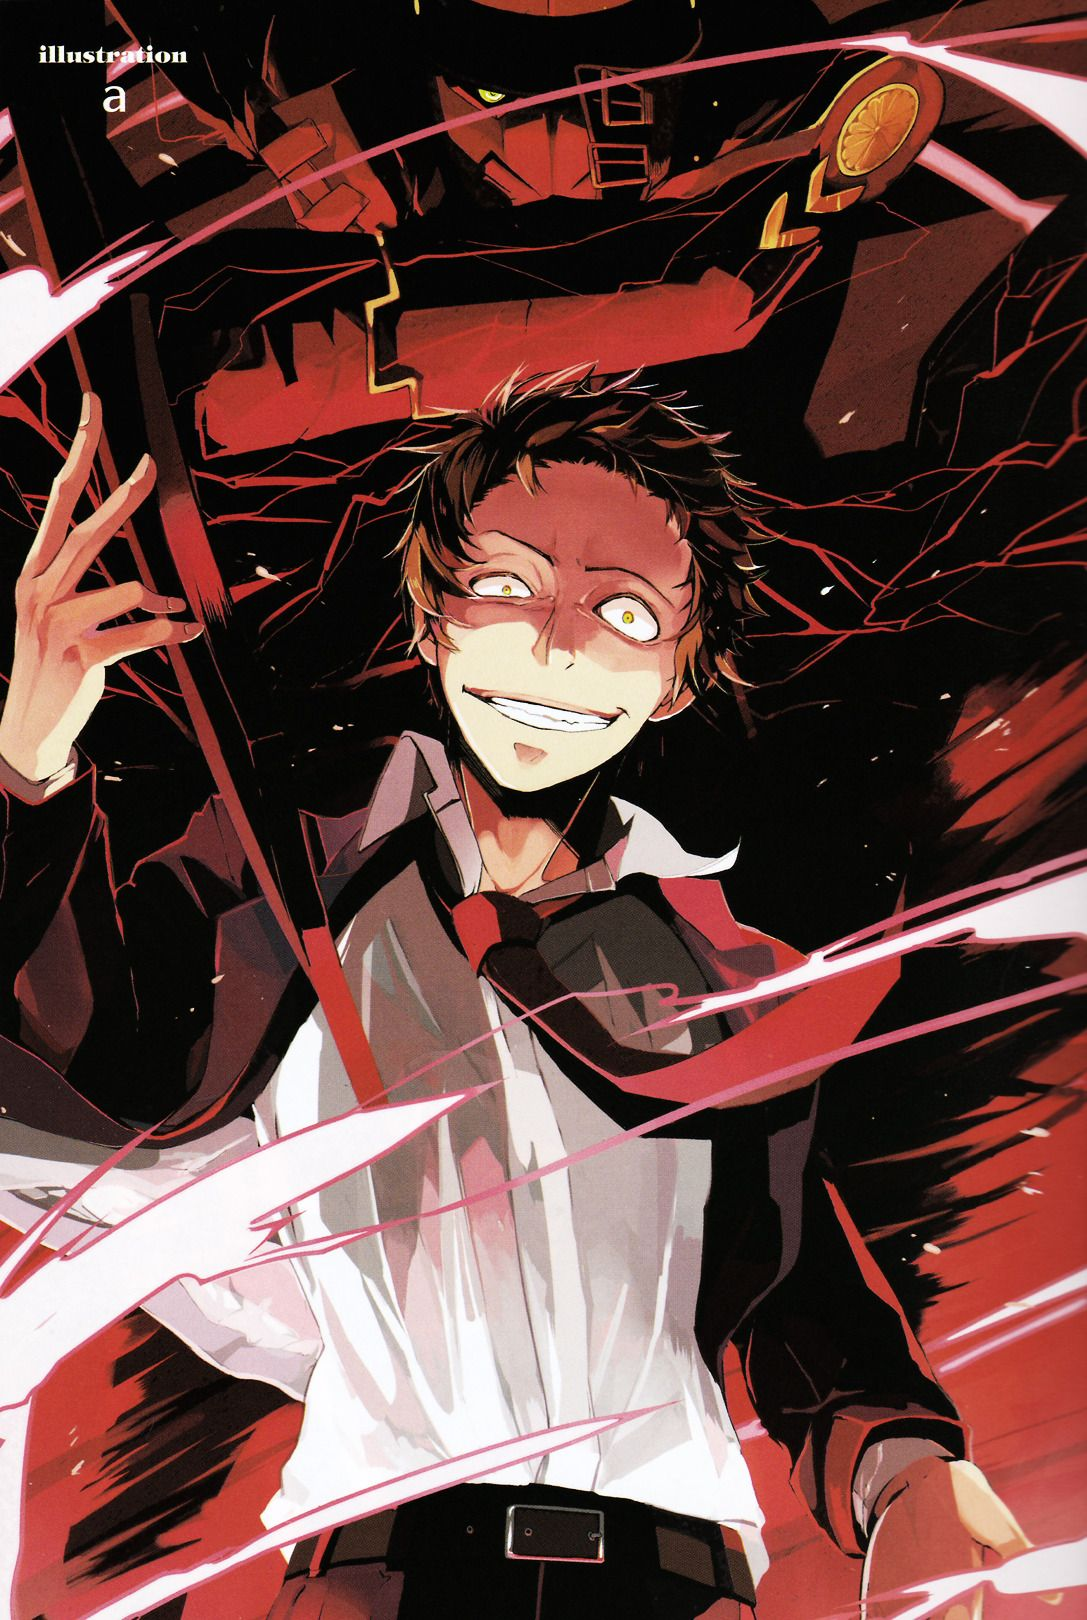 Adachi image by Star Wood Persona 5 anime, Persona 4